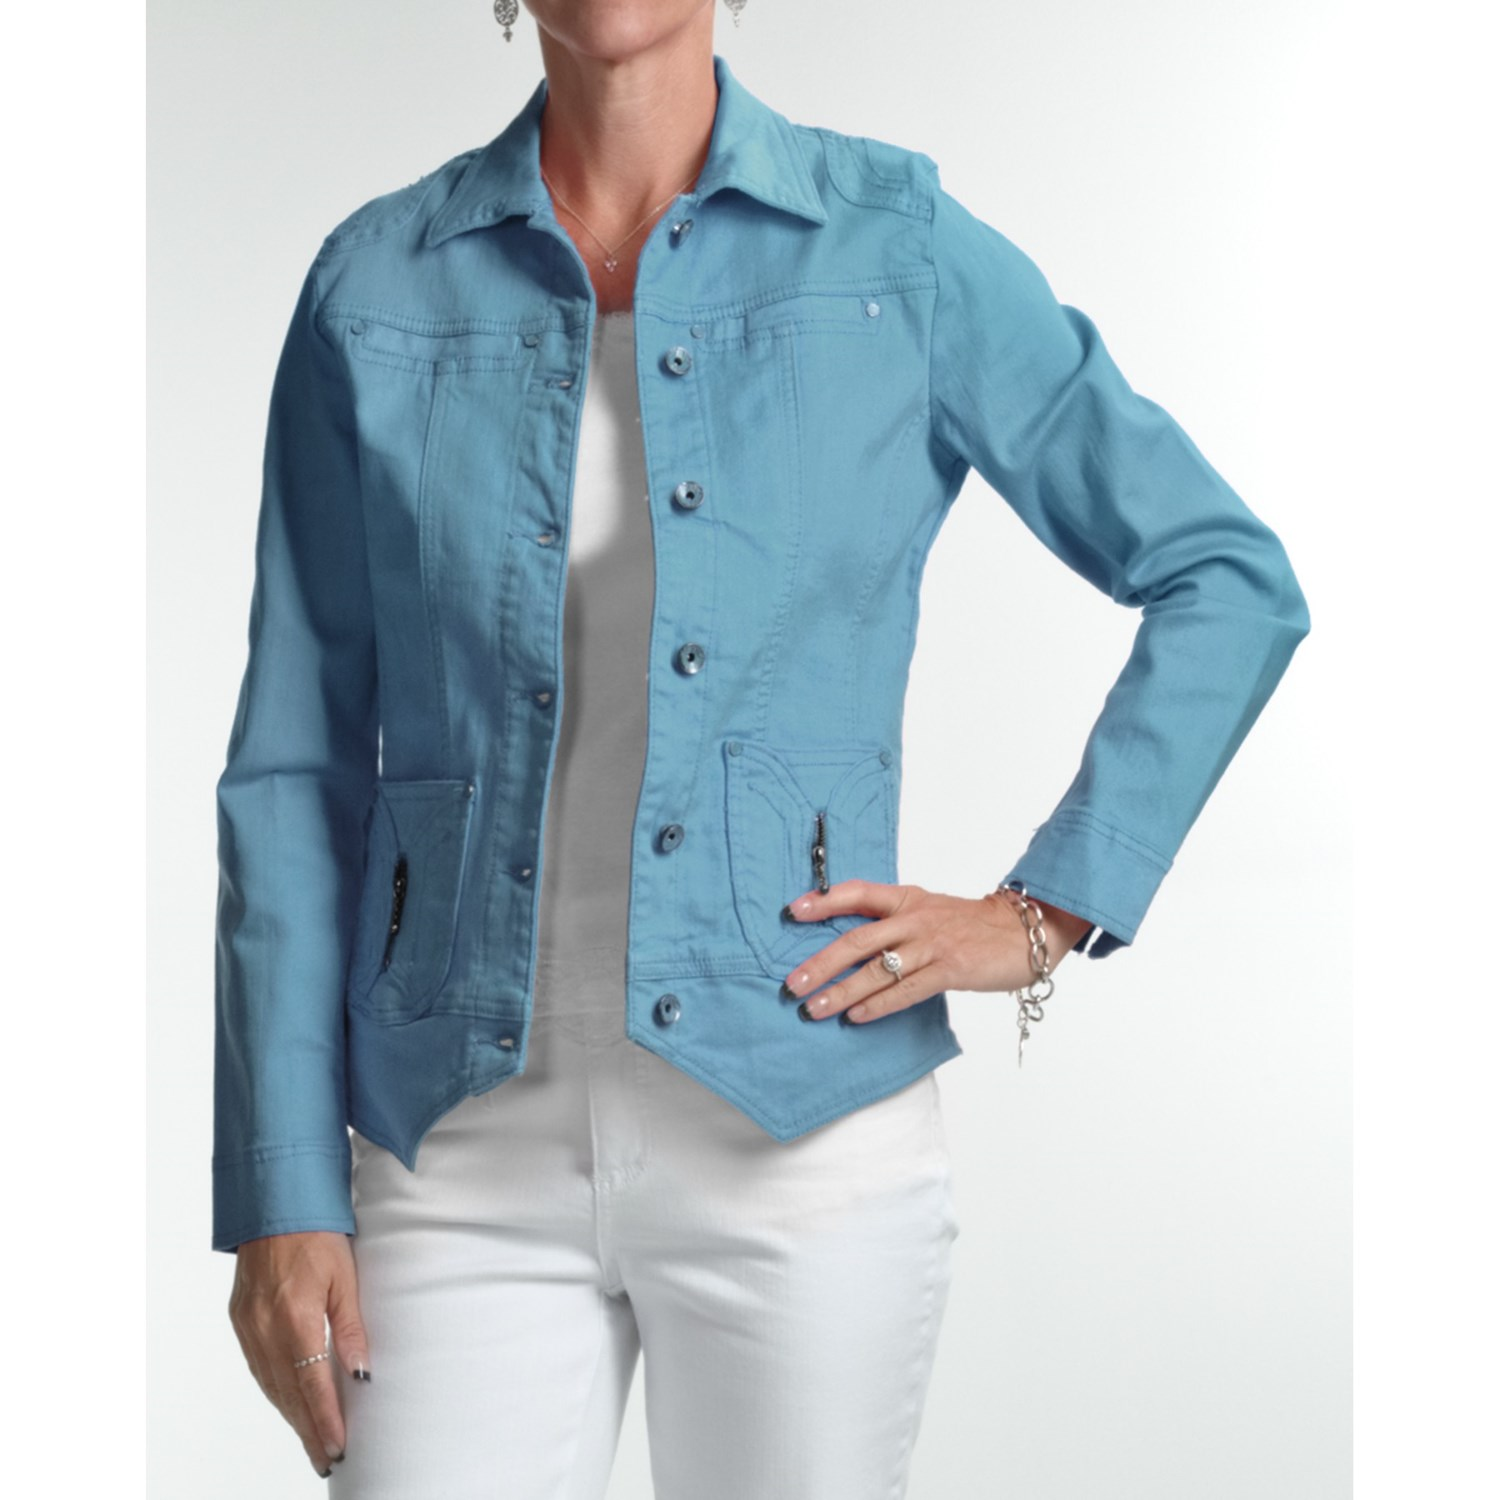 You'll find your look in JCPenney's collection of jean jackets for women. Colored Denim Jackets for a Bold Look. Liven up your jean jacket by getting one in a color. A white denim jacket looks classy and smart. Find one in a crop style and show your effortless summertime cool or wear it over a maxi dress for a fun look, or pair one with dark.